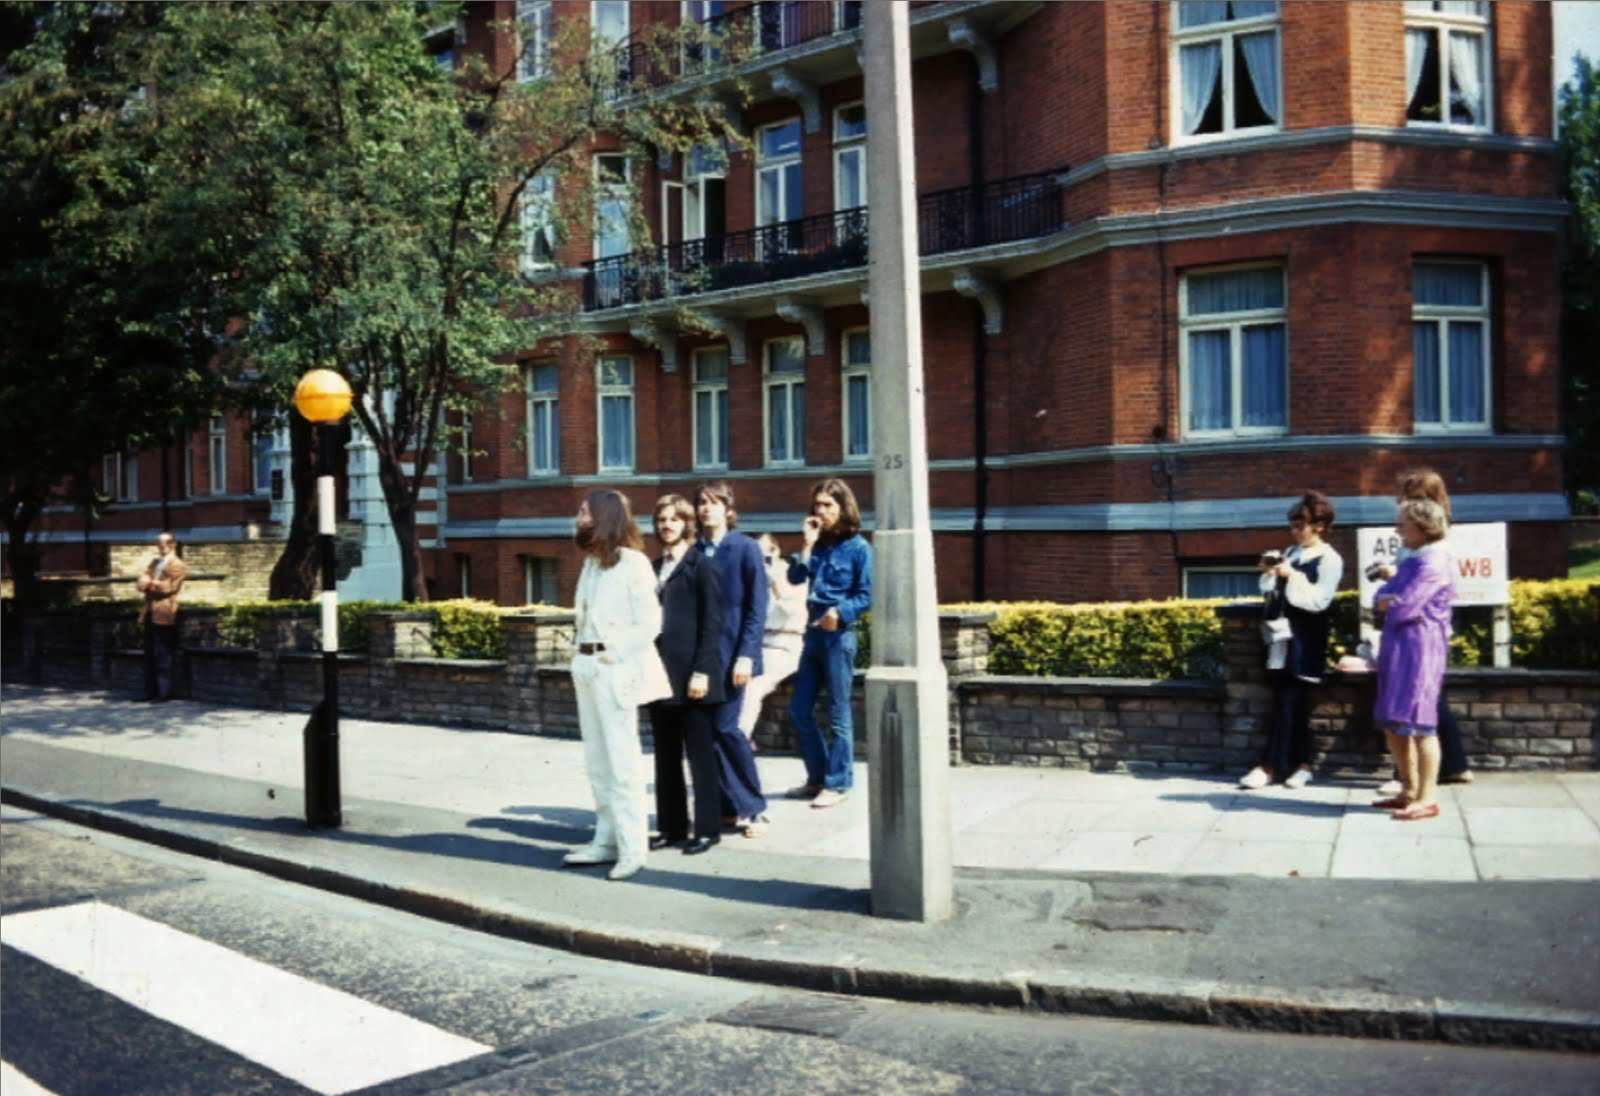 The Beatles On That Same Side Of Abbey Road 8 August 1969